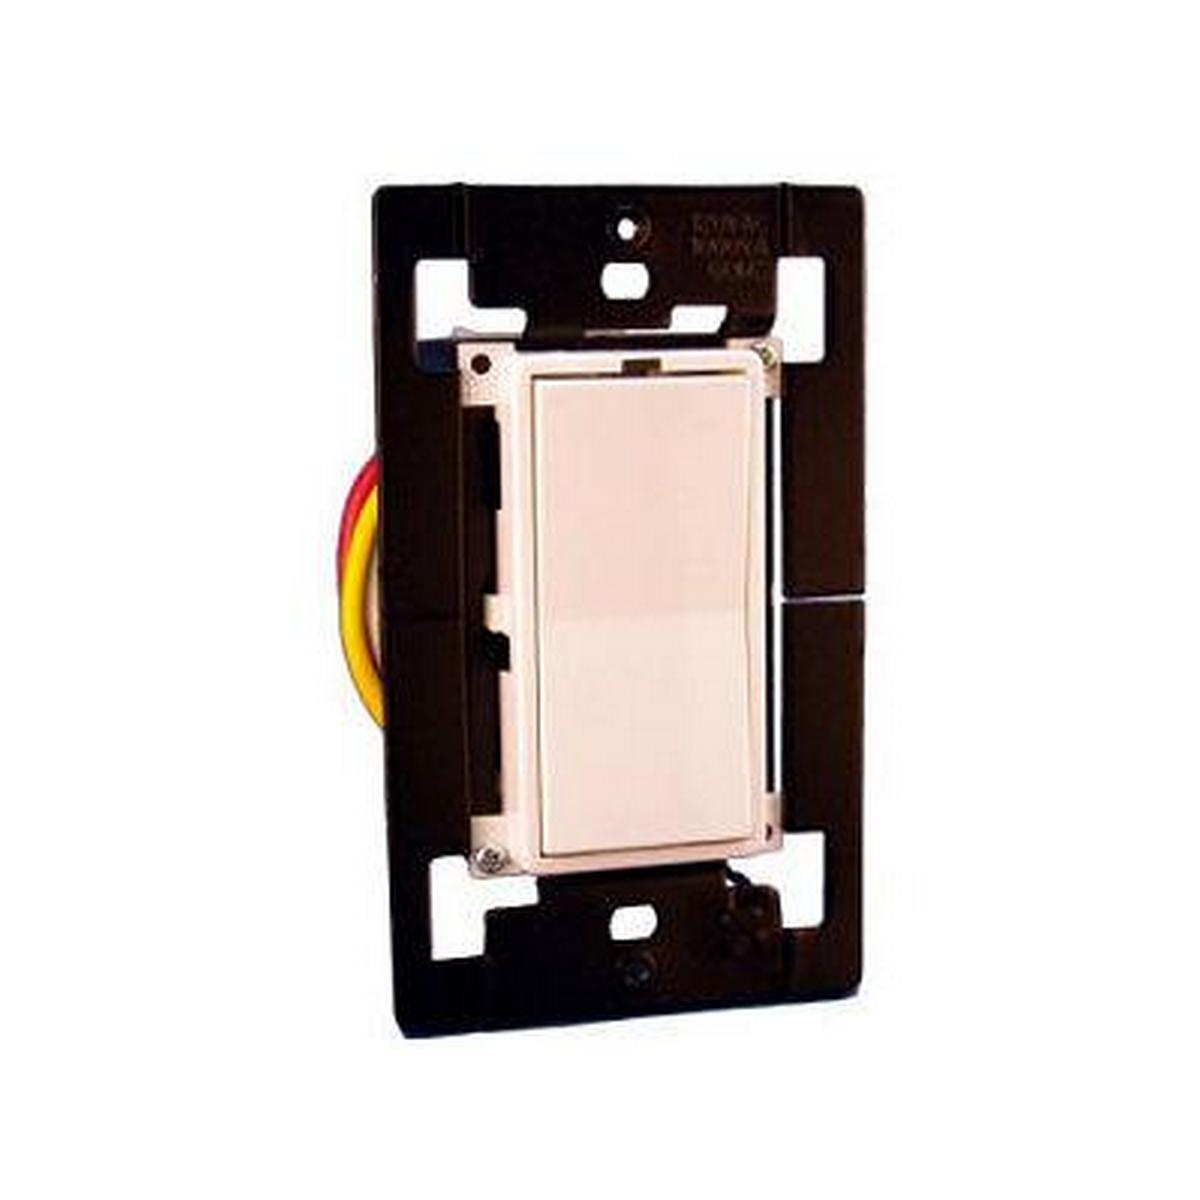 PulseWorx - Wall Switch/Dimmer - 600W/5A